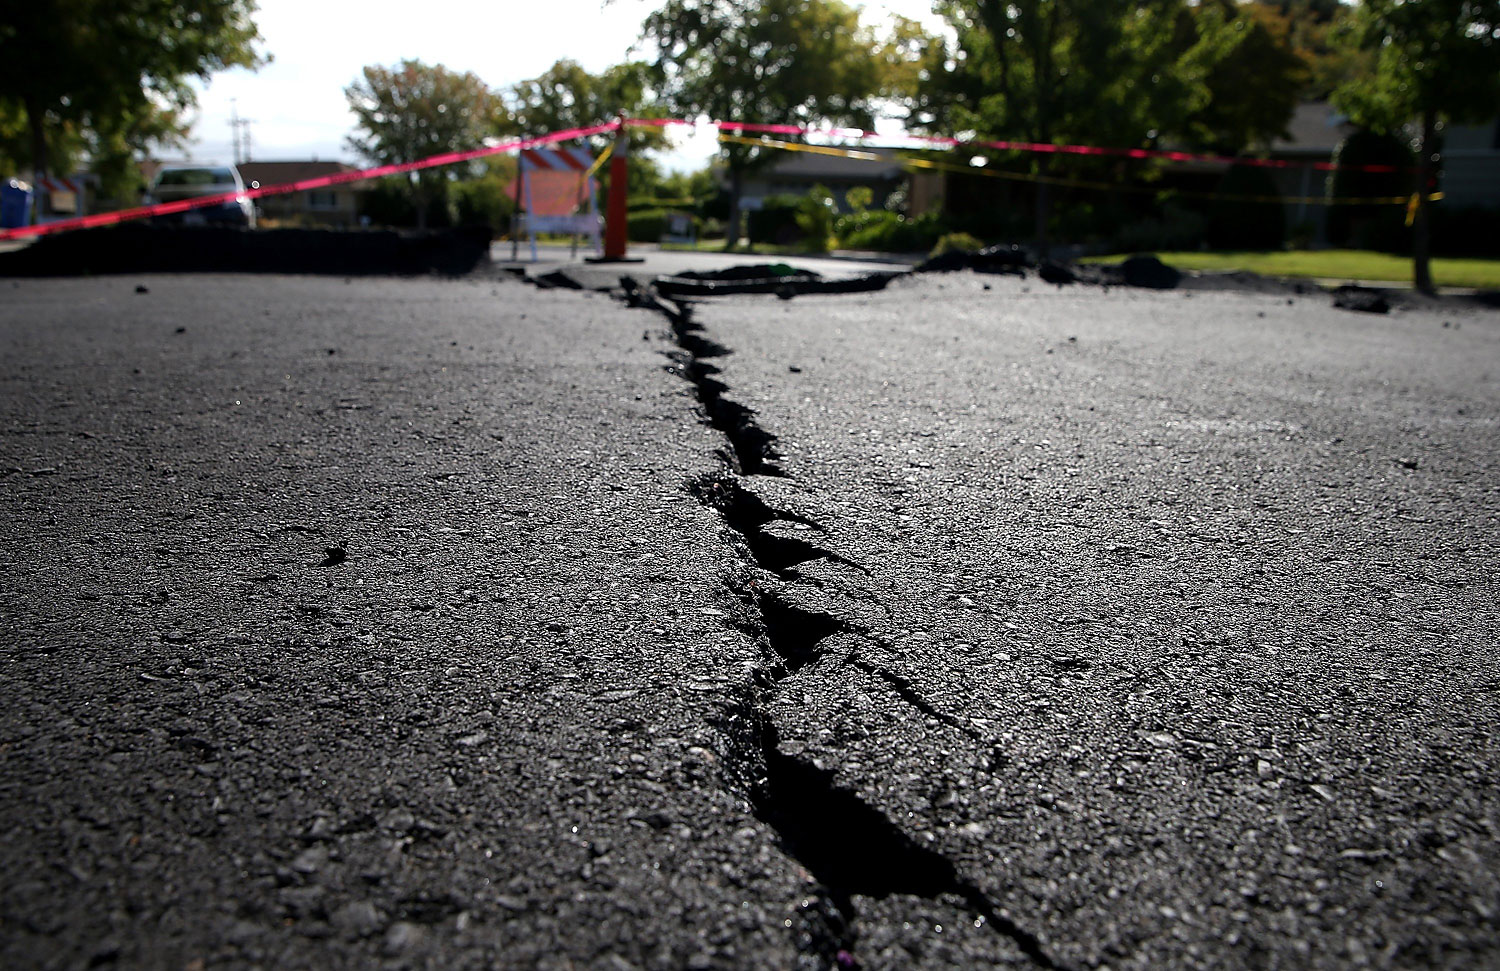 A crack runs down the center of an earthquake-damaged street in Napa, Calif., on Aug. 26, 2014